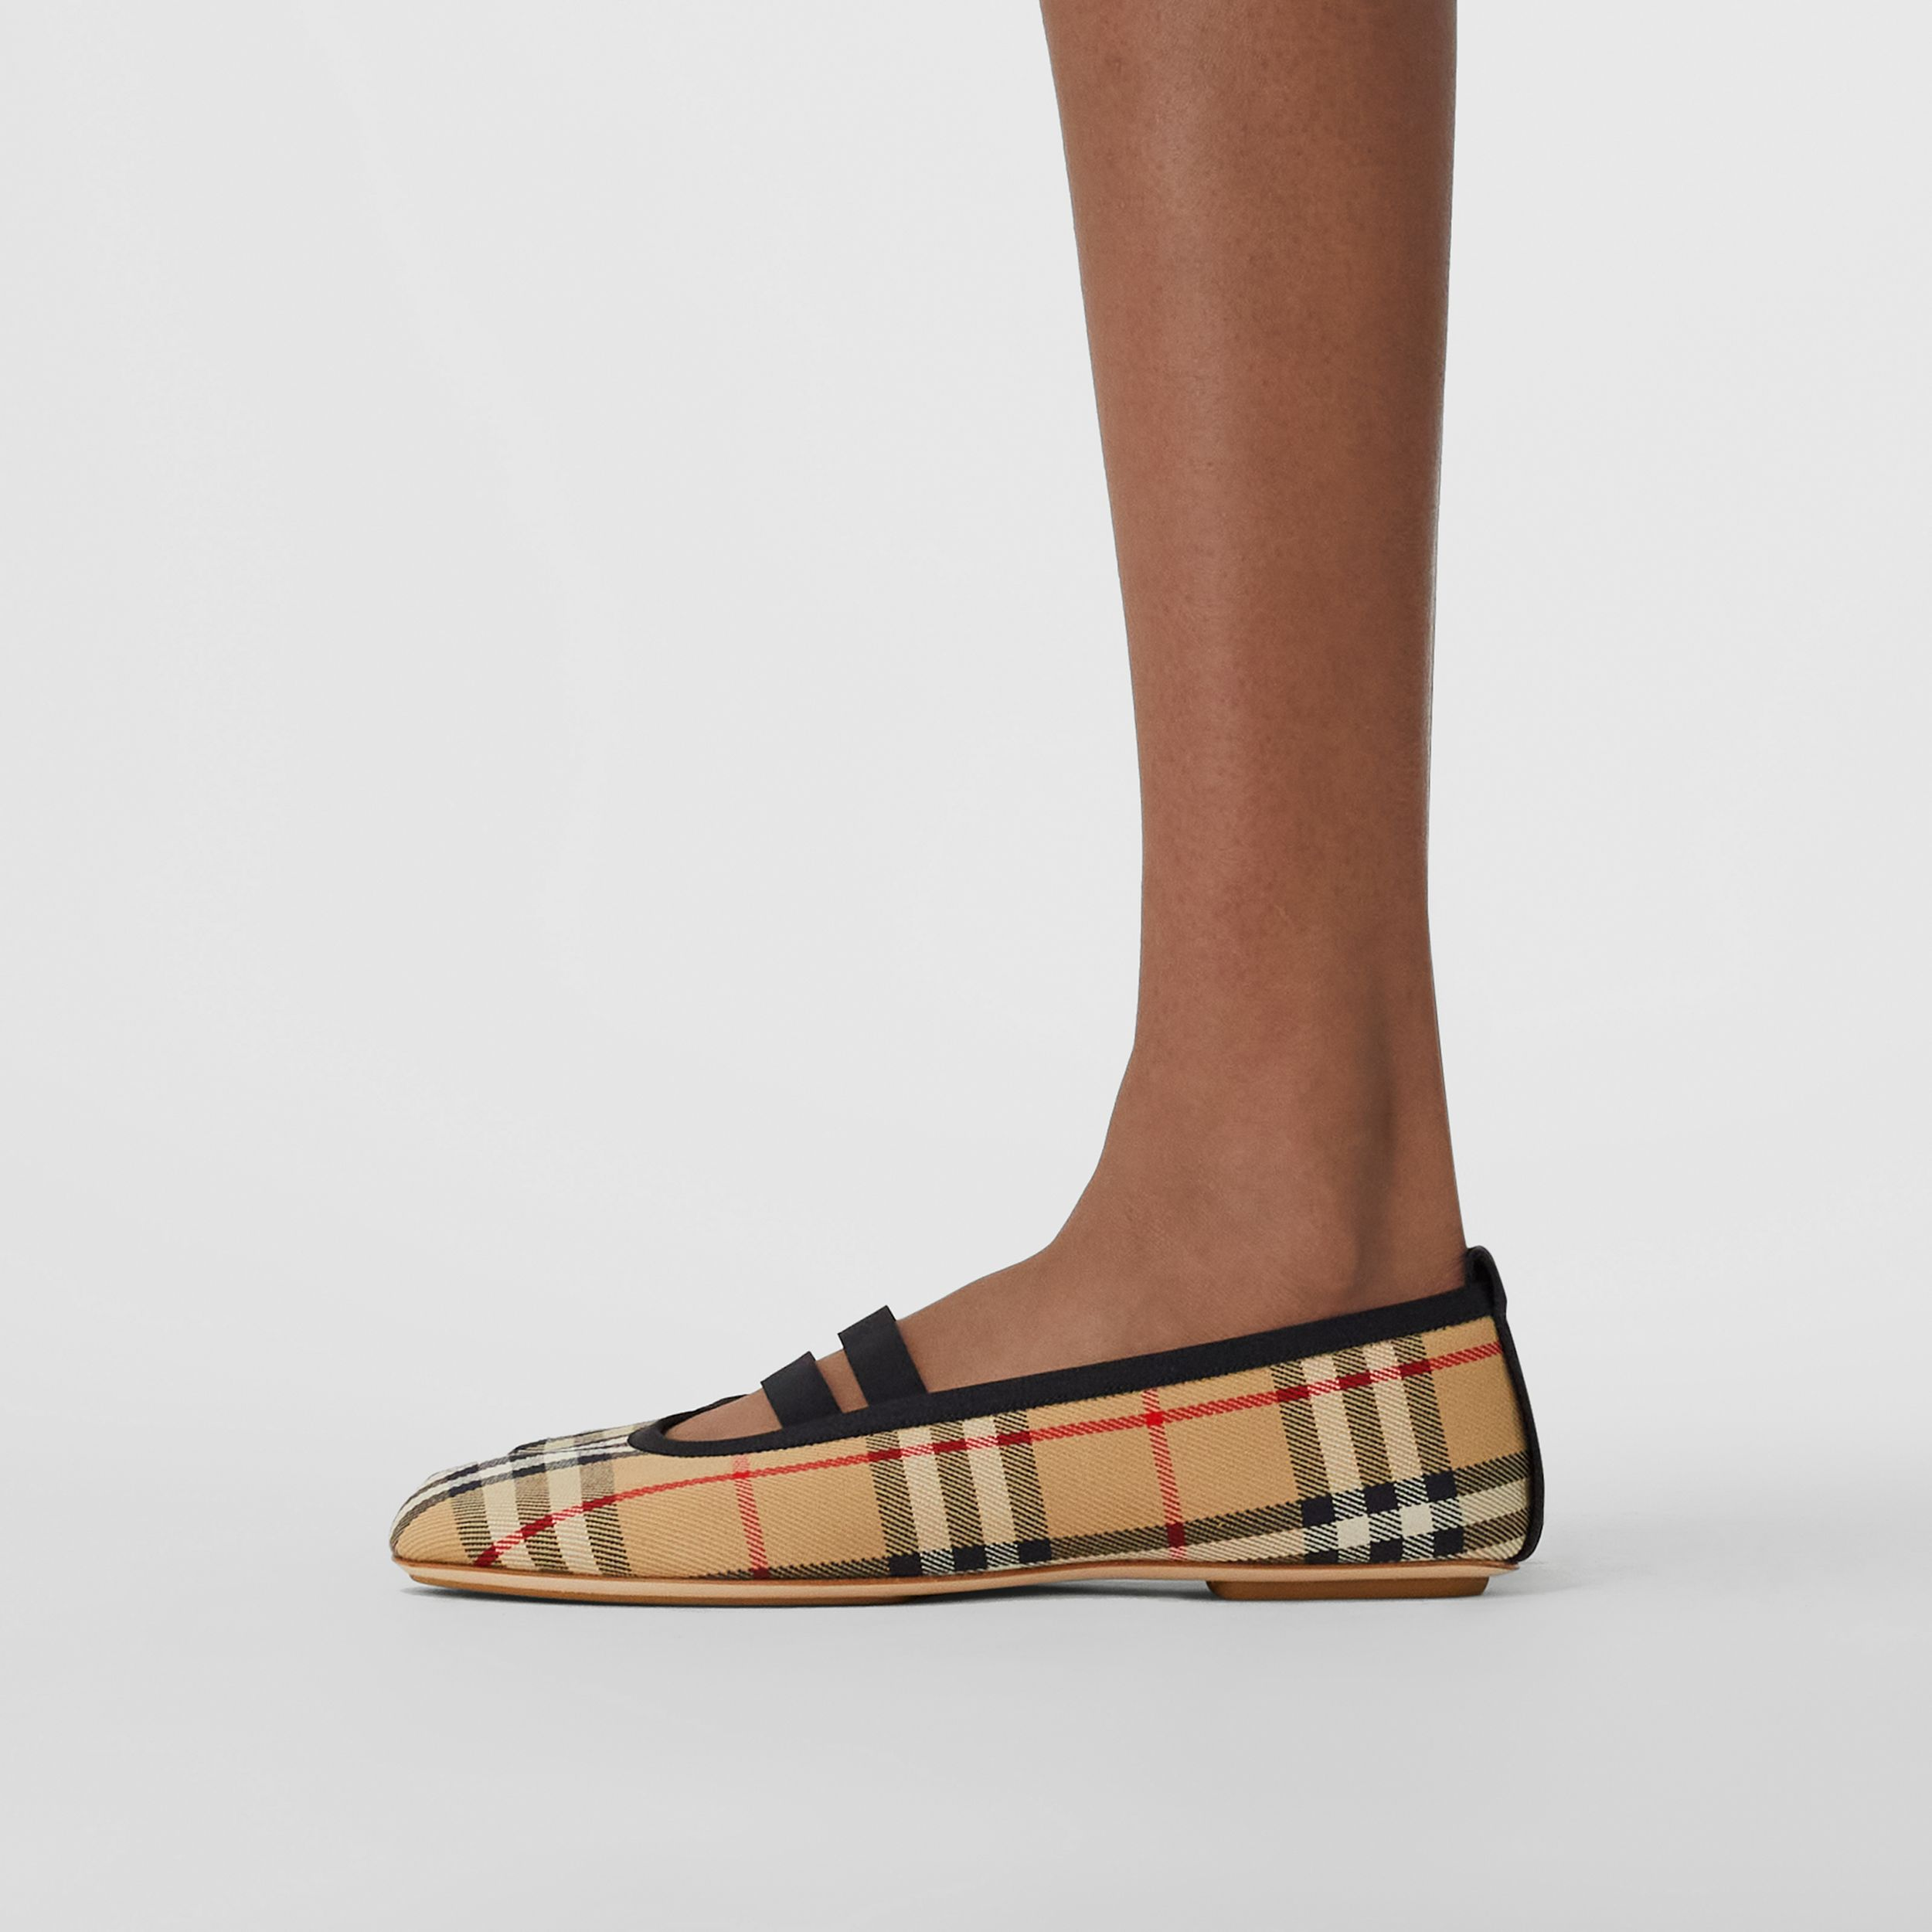 Logo Detail Vintage Check Cotton Ballerinas in Archive Beige - Women | Burberry United Kingdom - 3